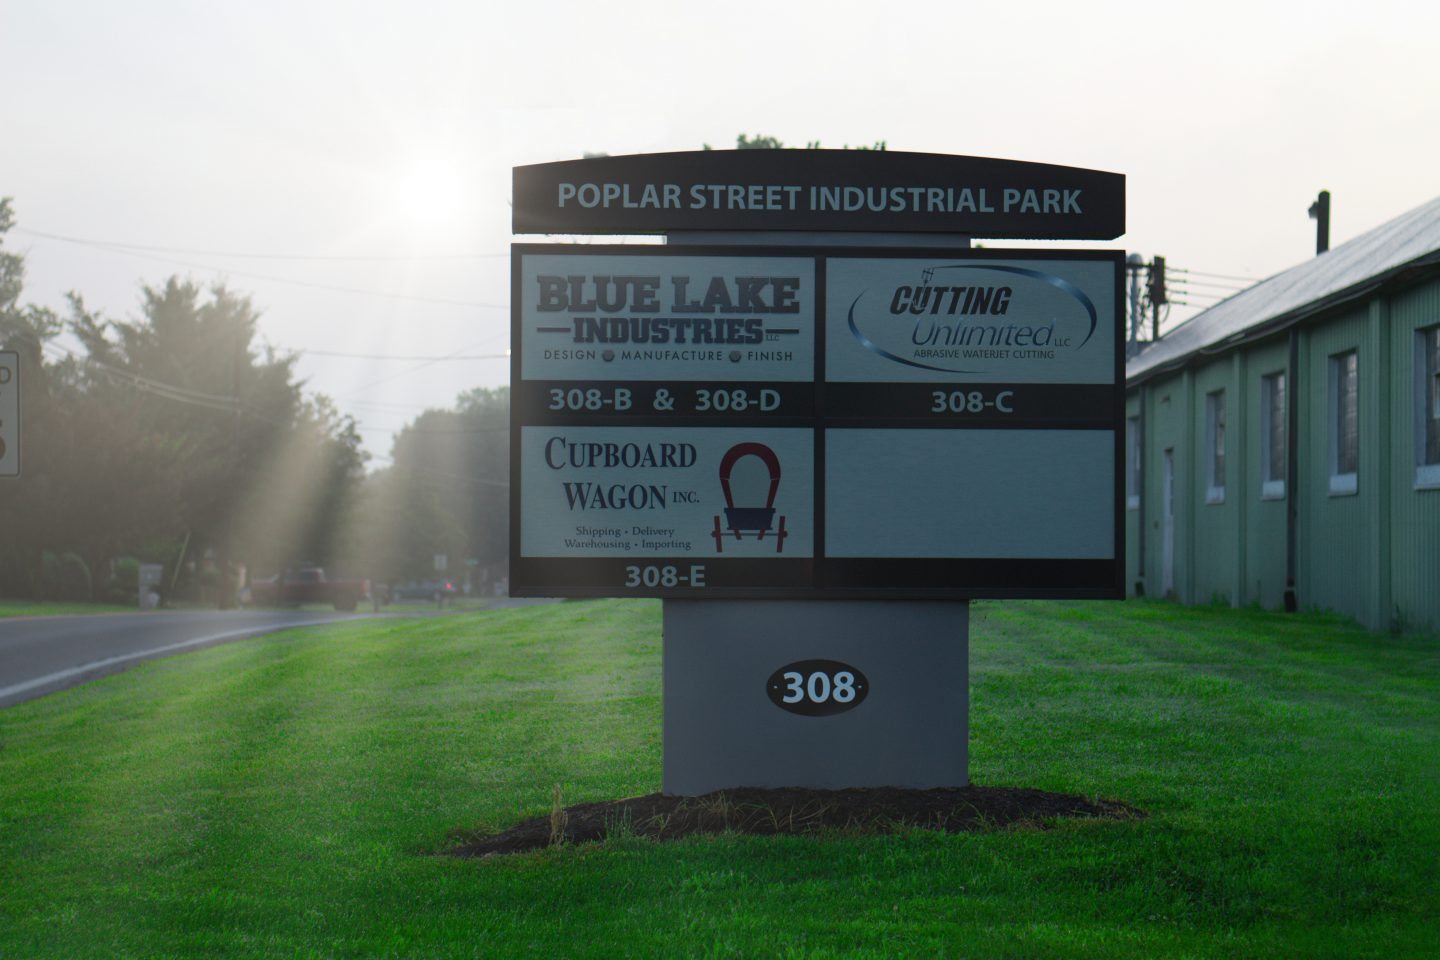 Contact Blue Lake Industries